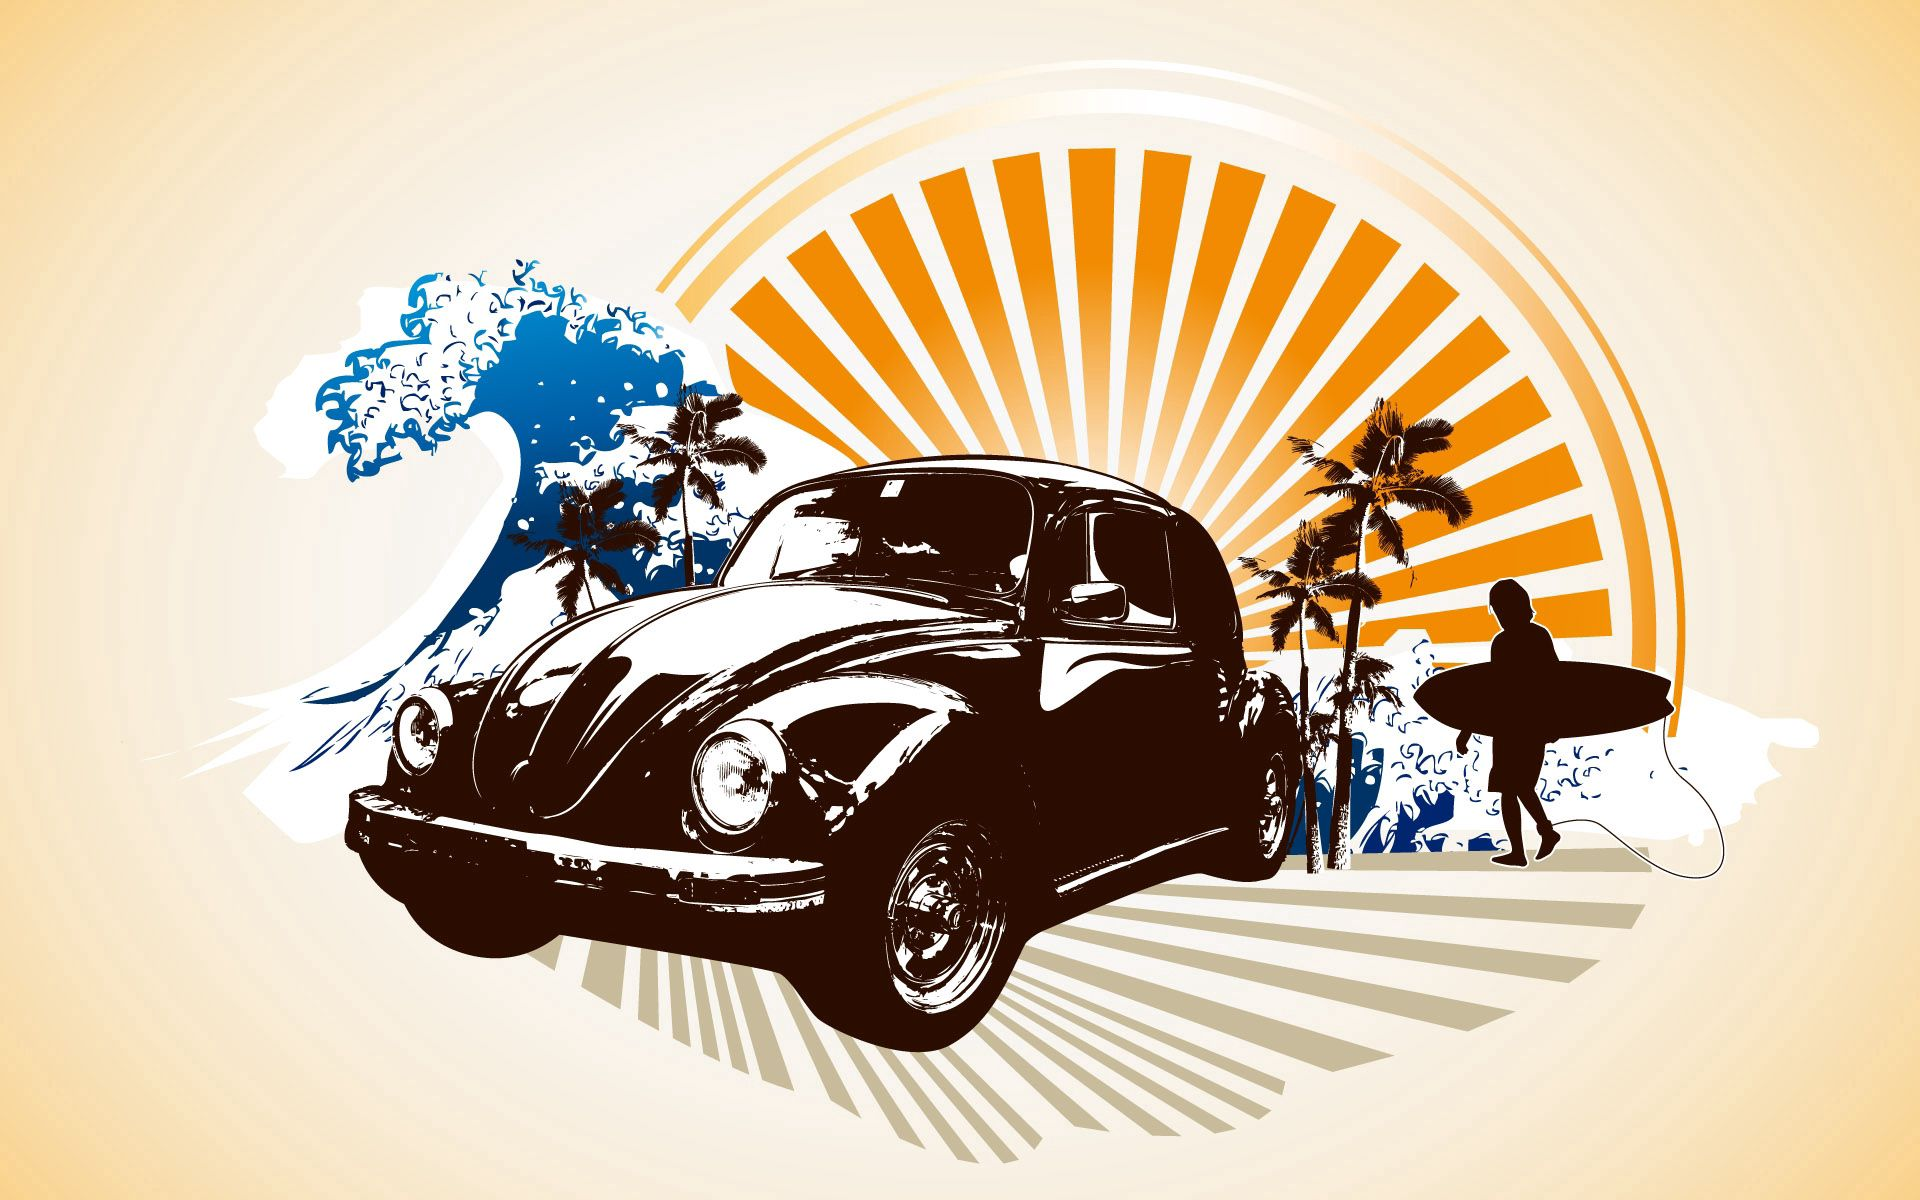 99925 download wallpaper Vector, Car, Sea, Serfing, Waves screensavers and pictures for free